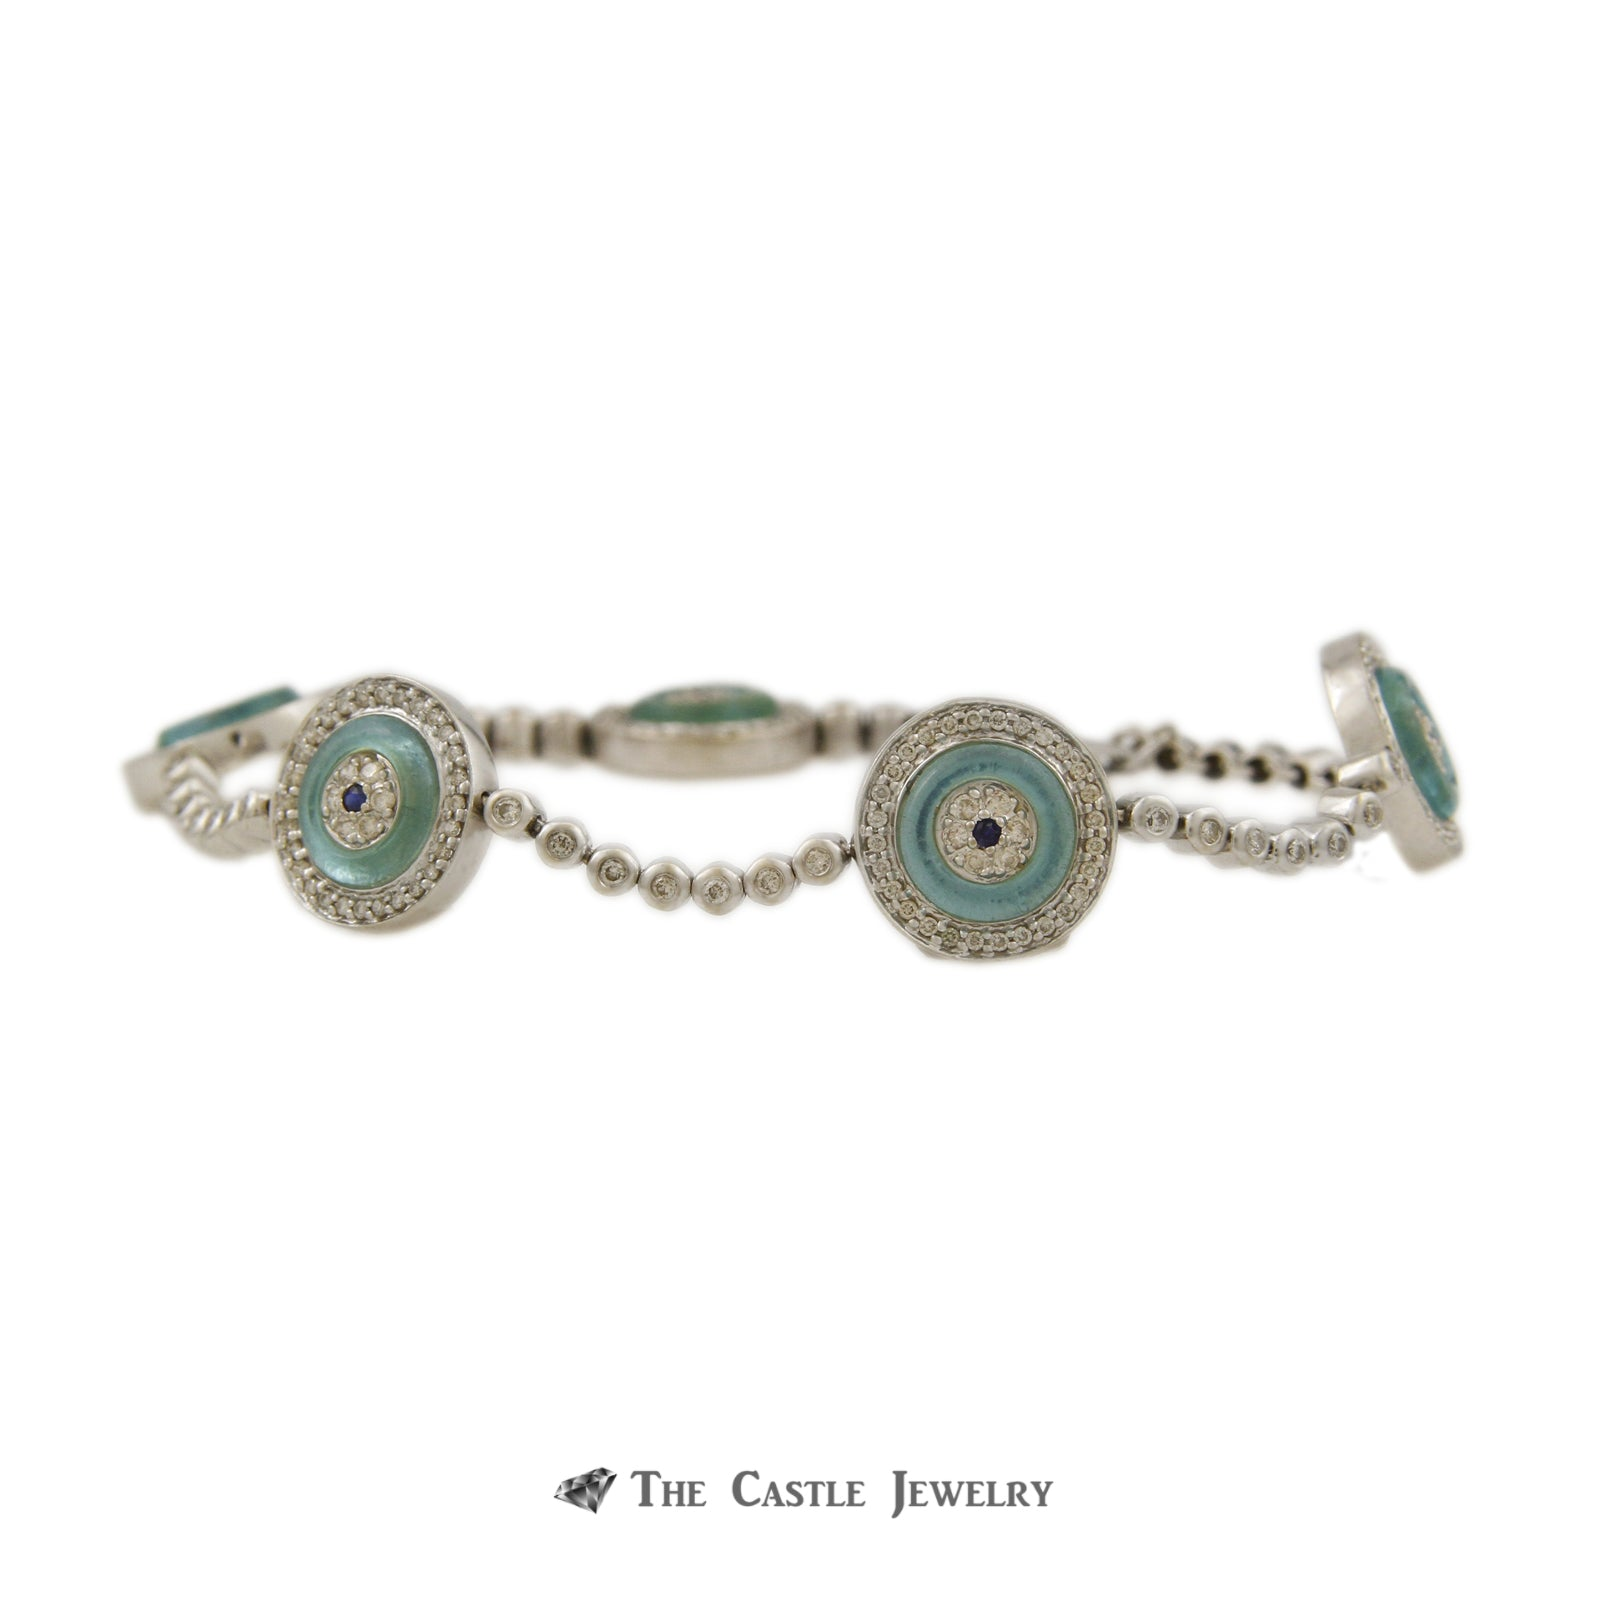 Evil Eye Bracelet Teal Blue Glass & Sapphire Center Surrounded by 1.50cttw Diamonds